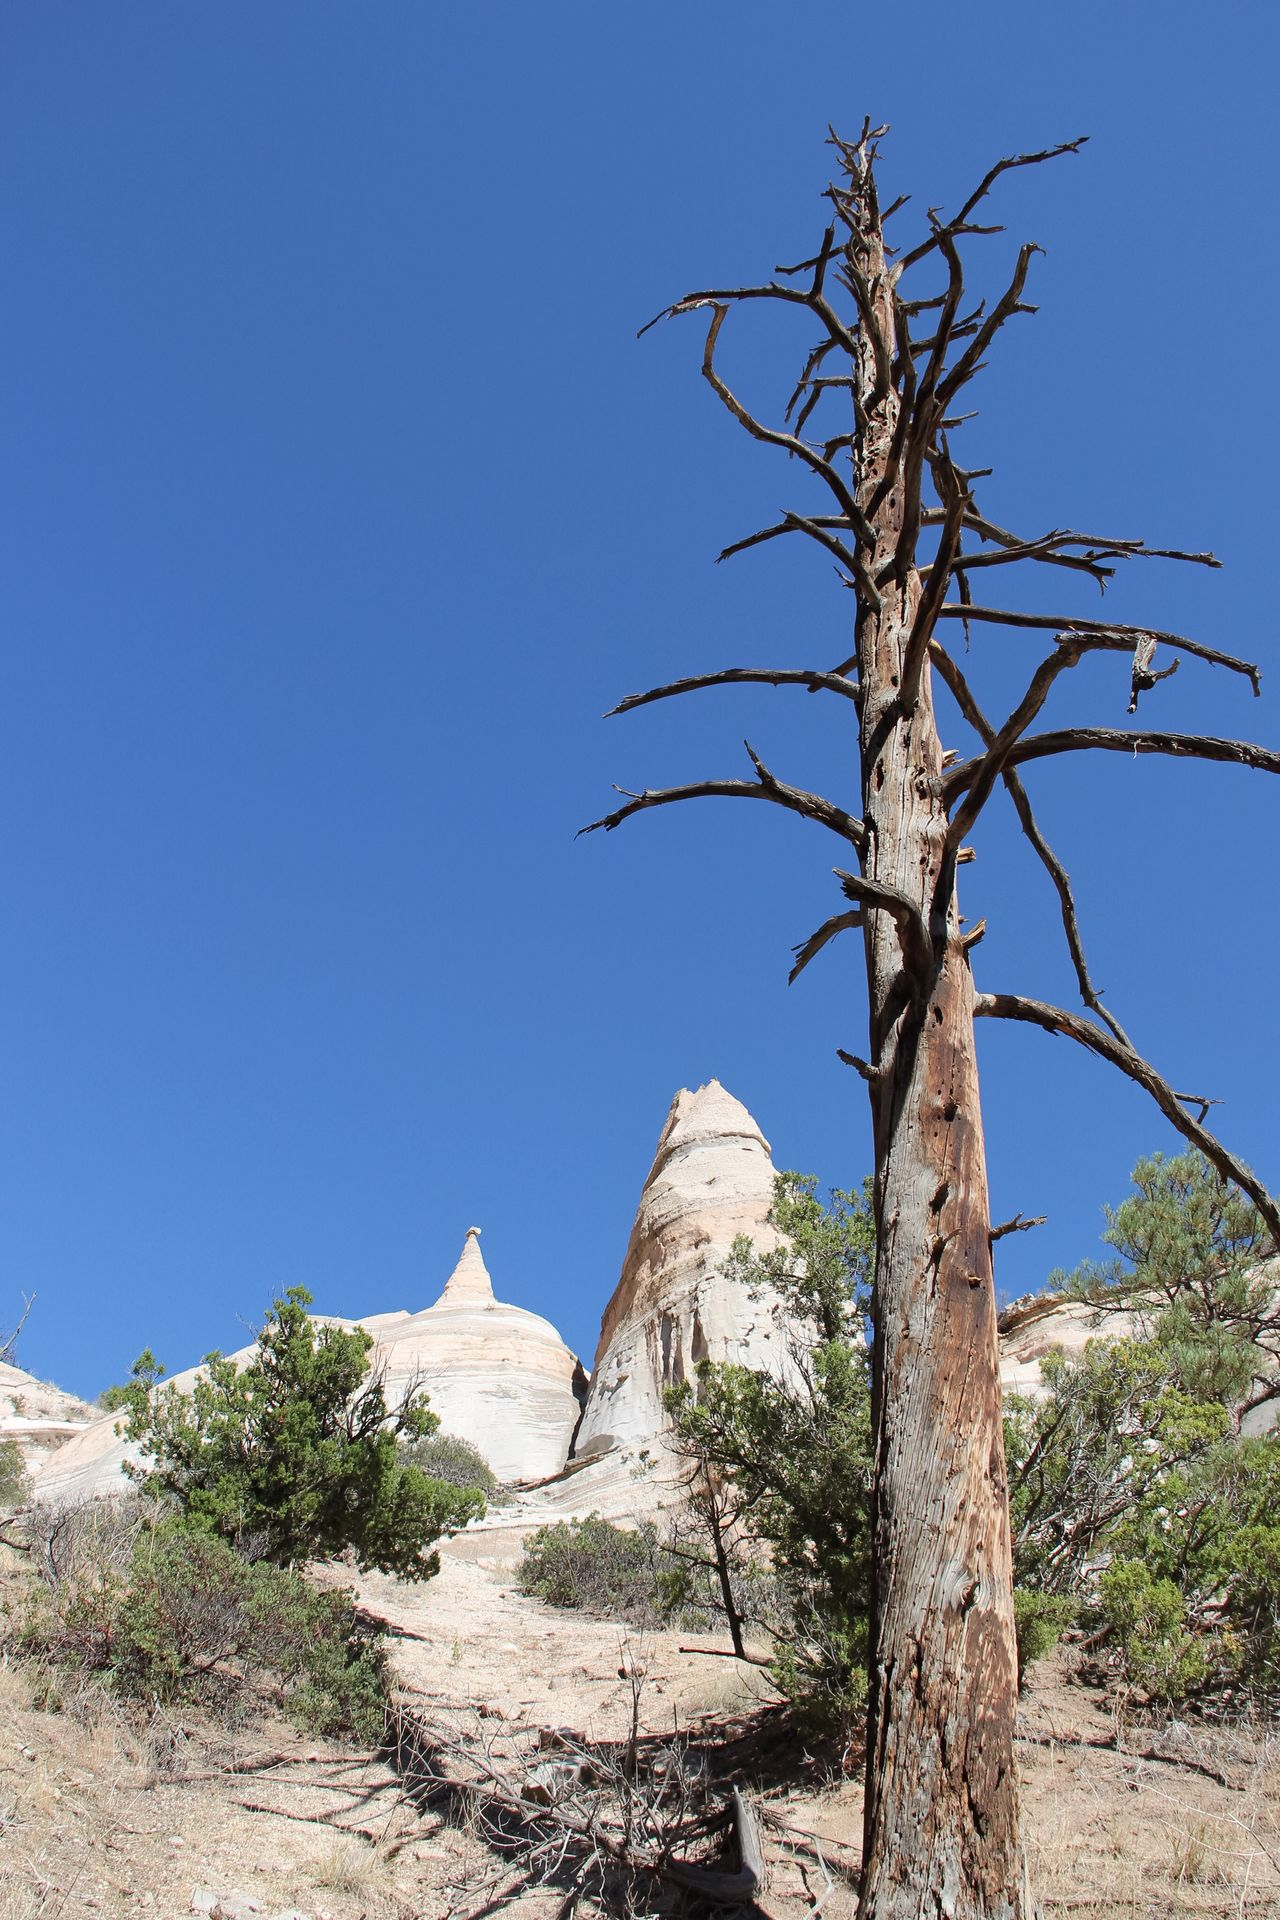 Clear Sky Landscape Tranquil Scene Solitude Tree Bare Tree Tranquility Blue Branch Remote Beauty In Nature Scenics Countryside Tree Trunk Low Angle View Nature Arid Climate Non-urban Scene Day Mountain Kasha-Katuwe Tent Rocks National Monument Weathered TakeoverContrast Rock Beauty In Nature